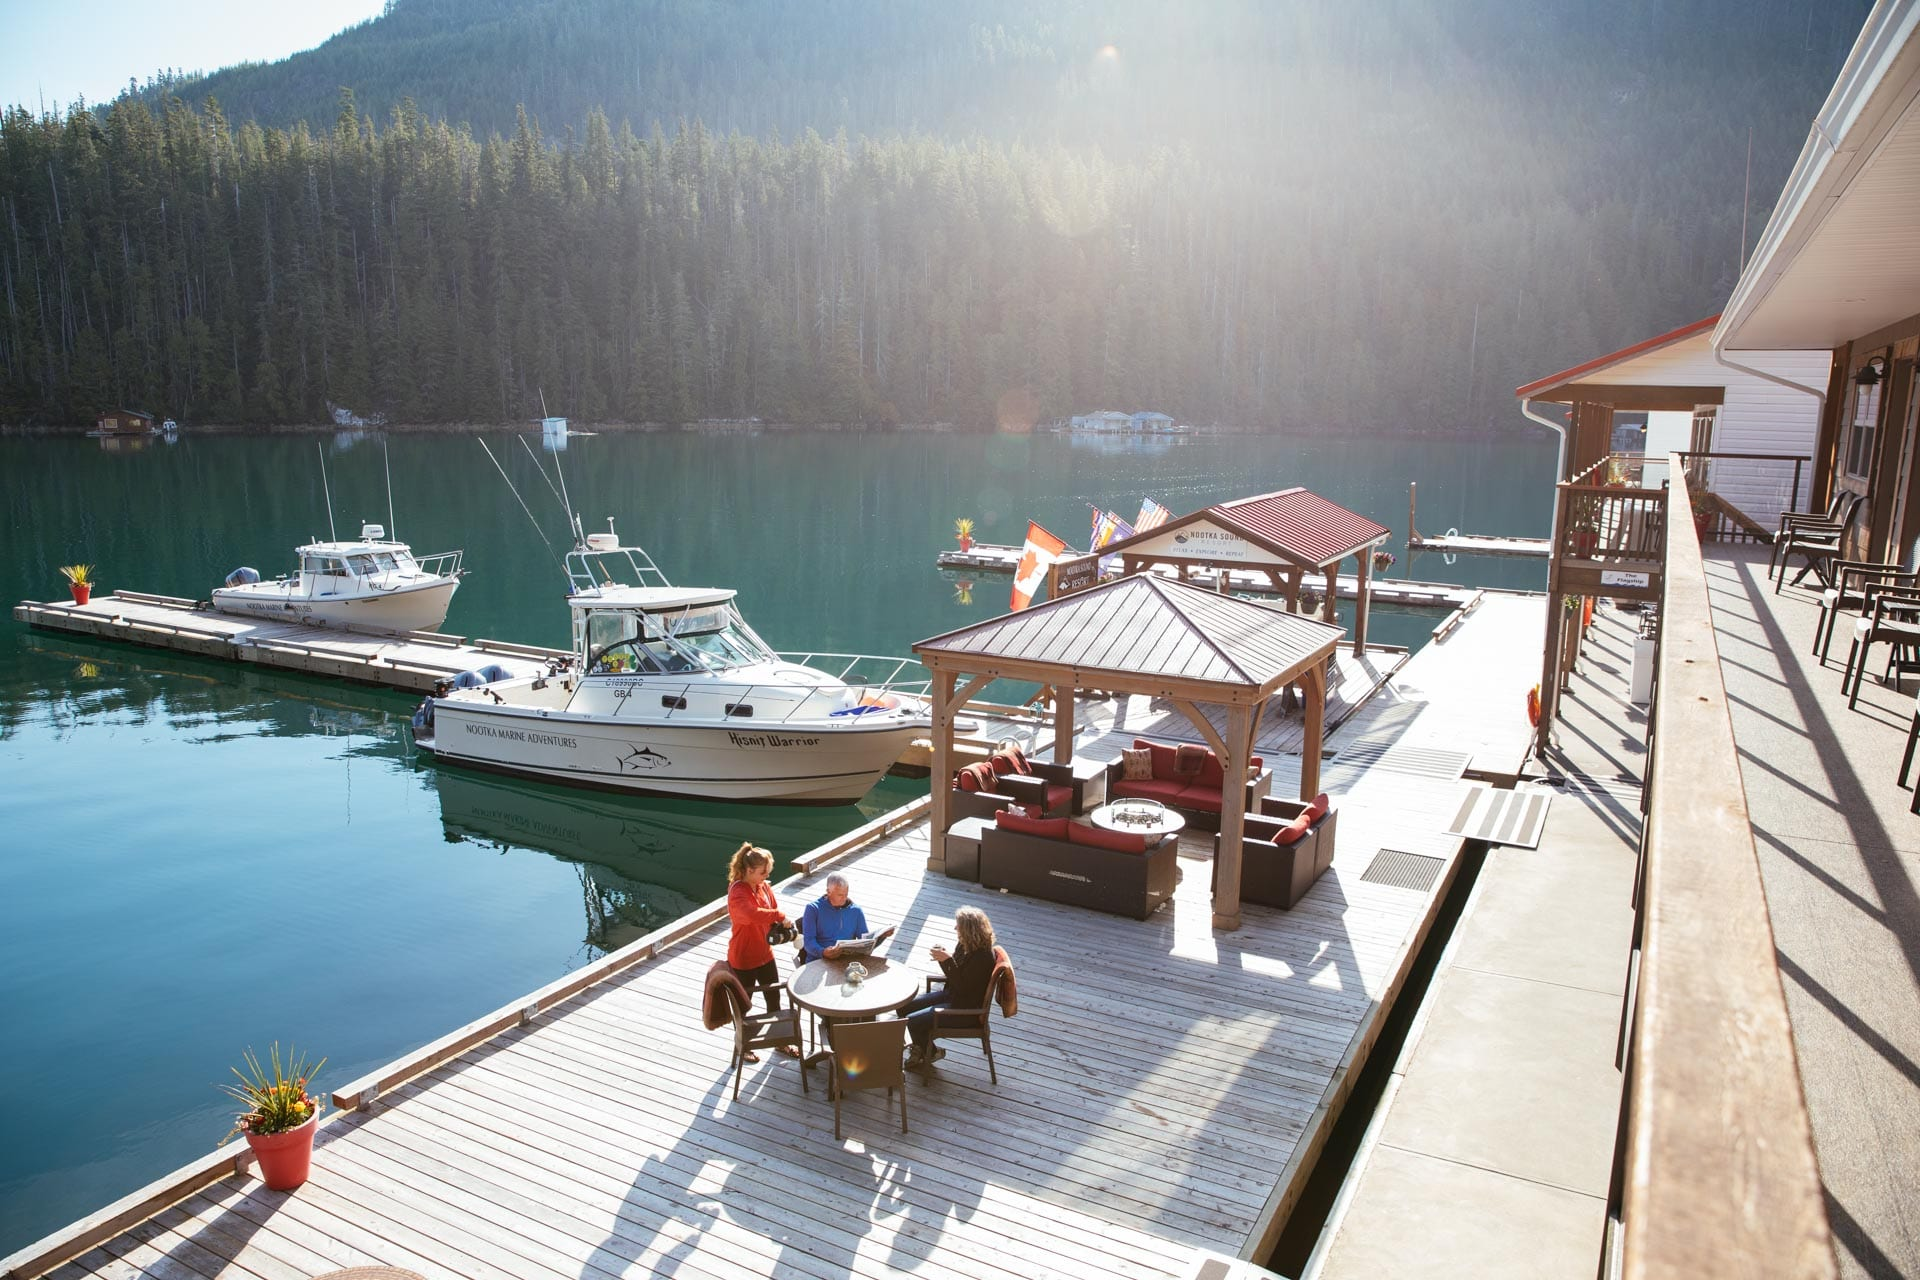 Nootka Sound Resort